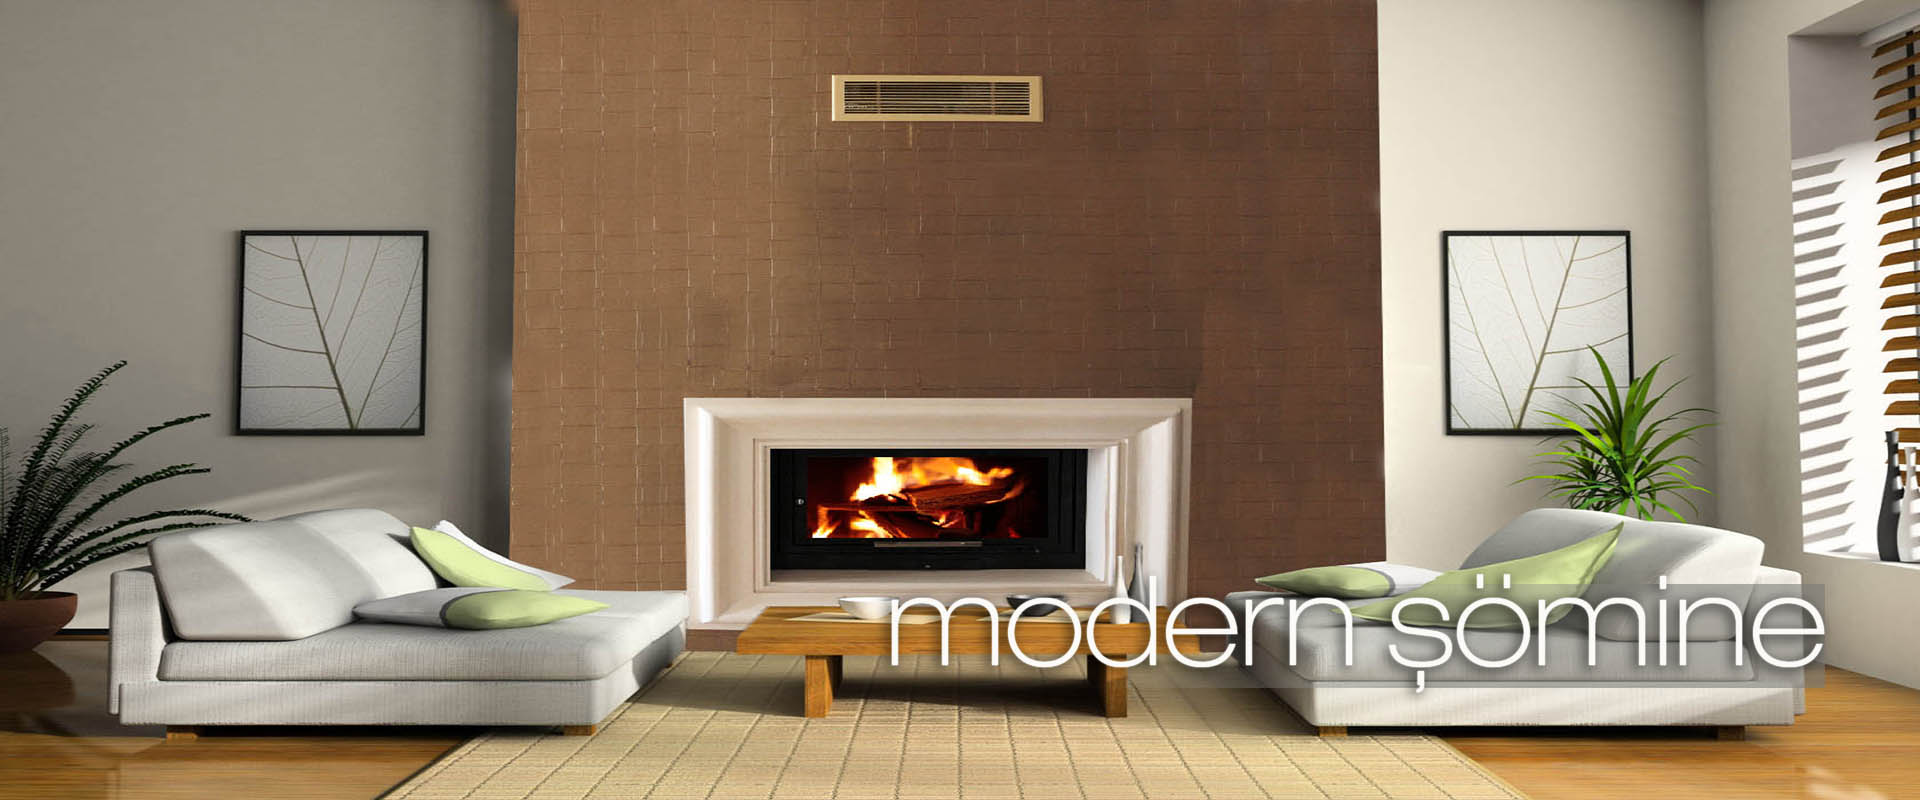 Green interior fireplace modern atmospheric lounge living room